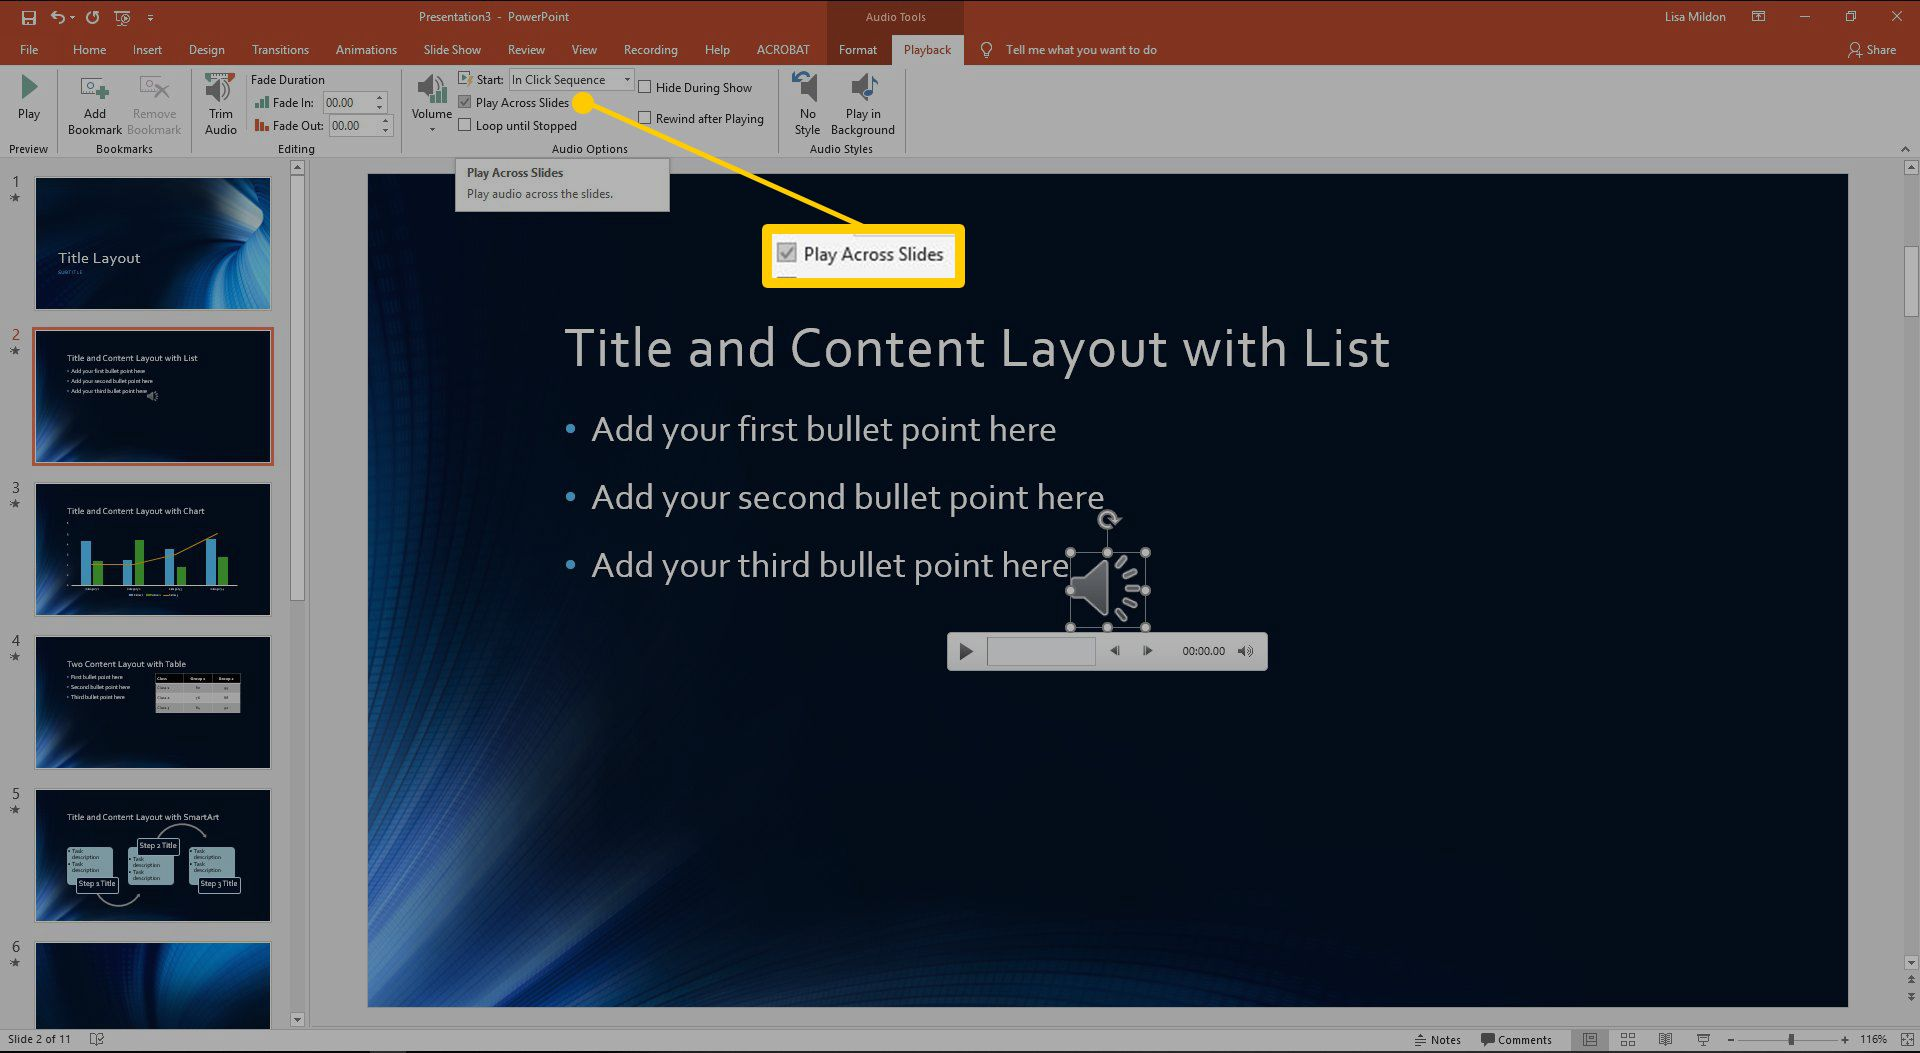 The audio options dialog box in PowerPoint